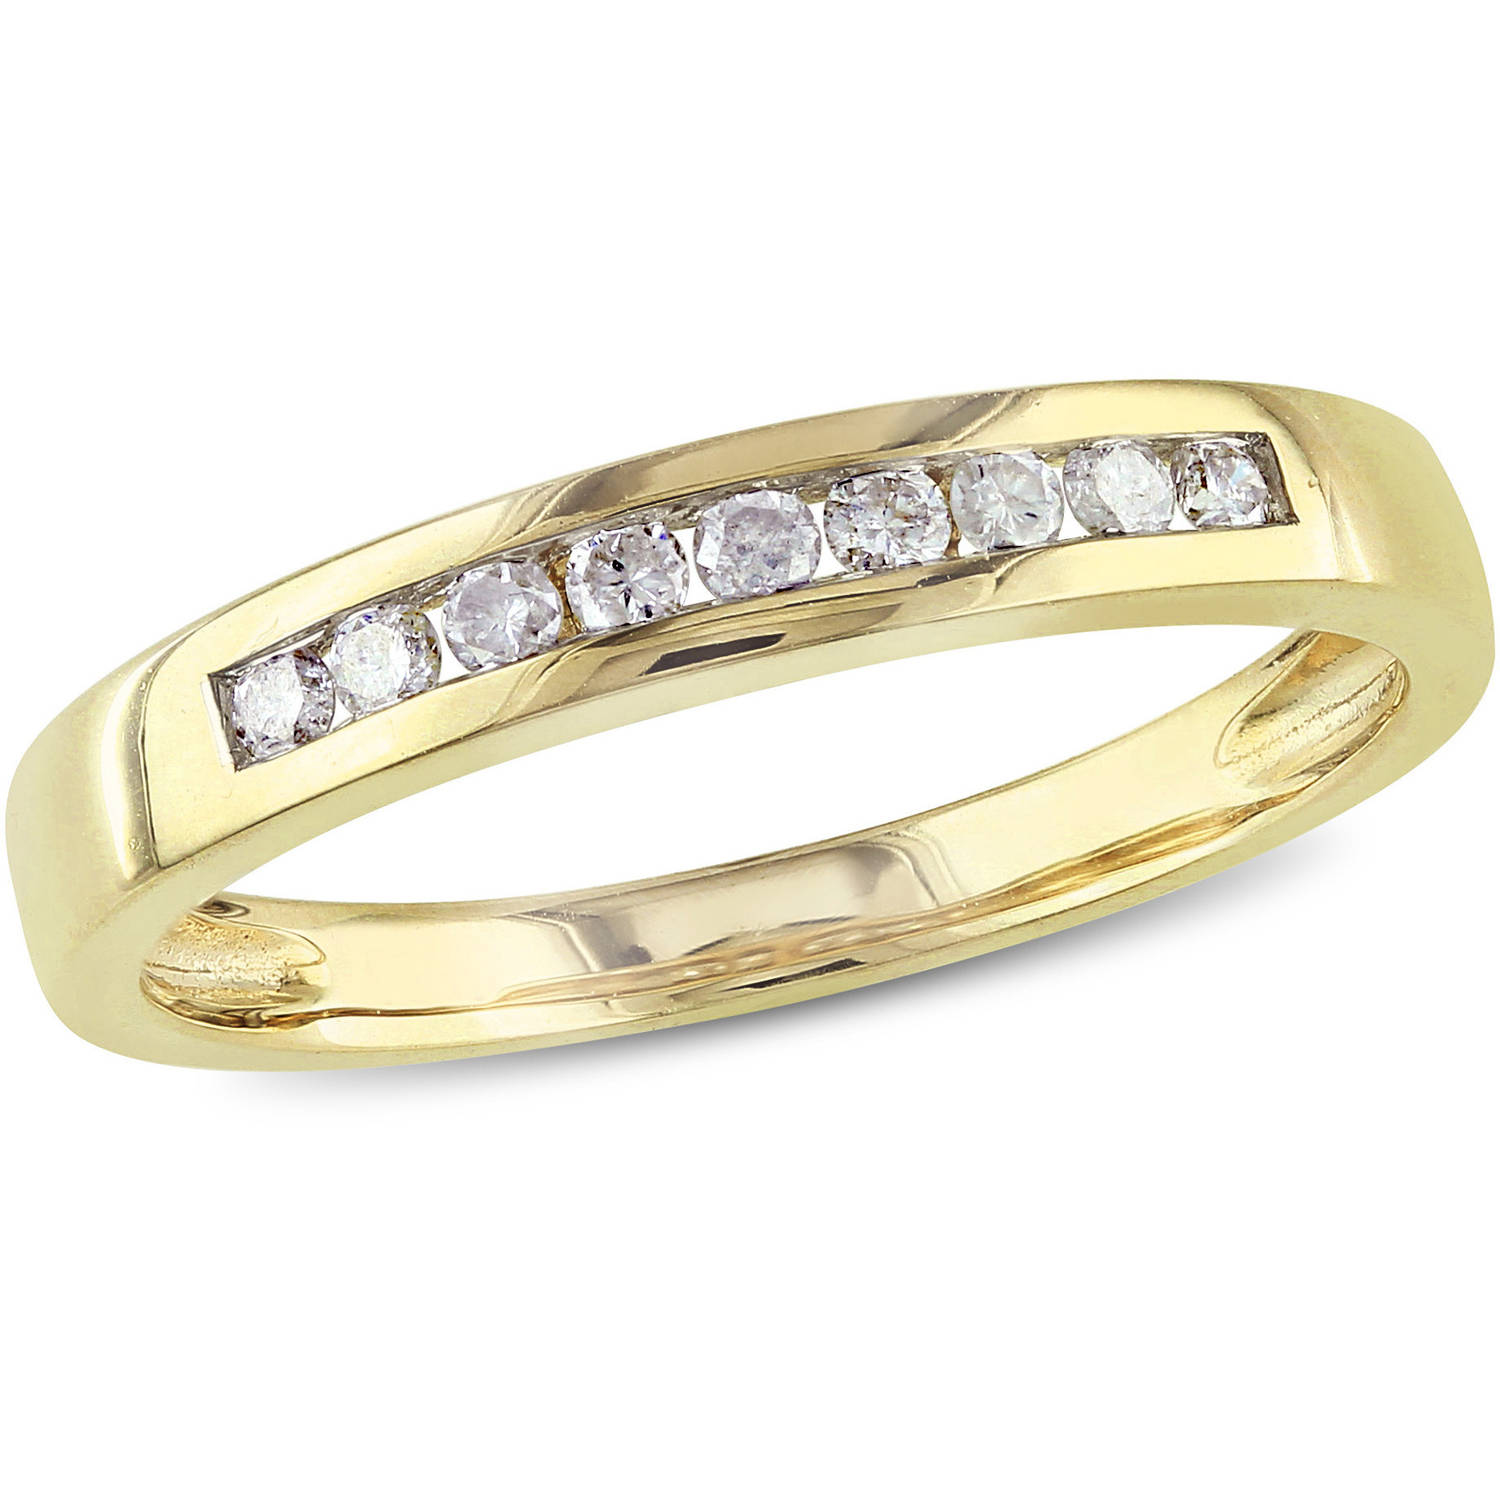 1/5 Carat T.W. Diamond Semi-Eternity Ring in 10kt Yellow Gold